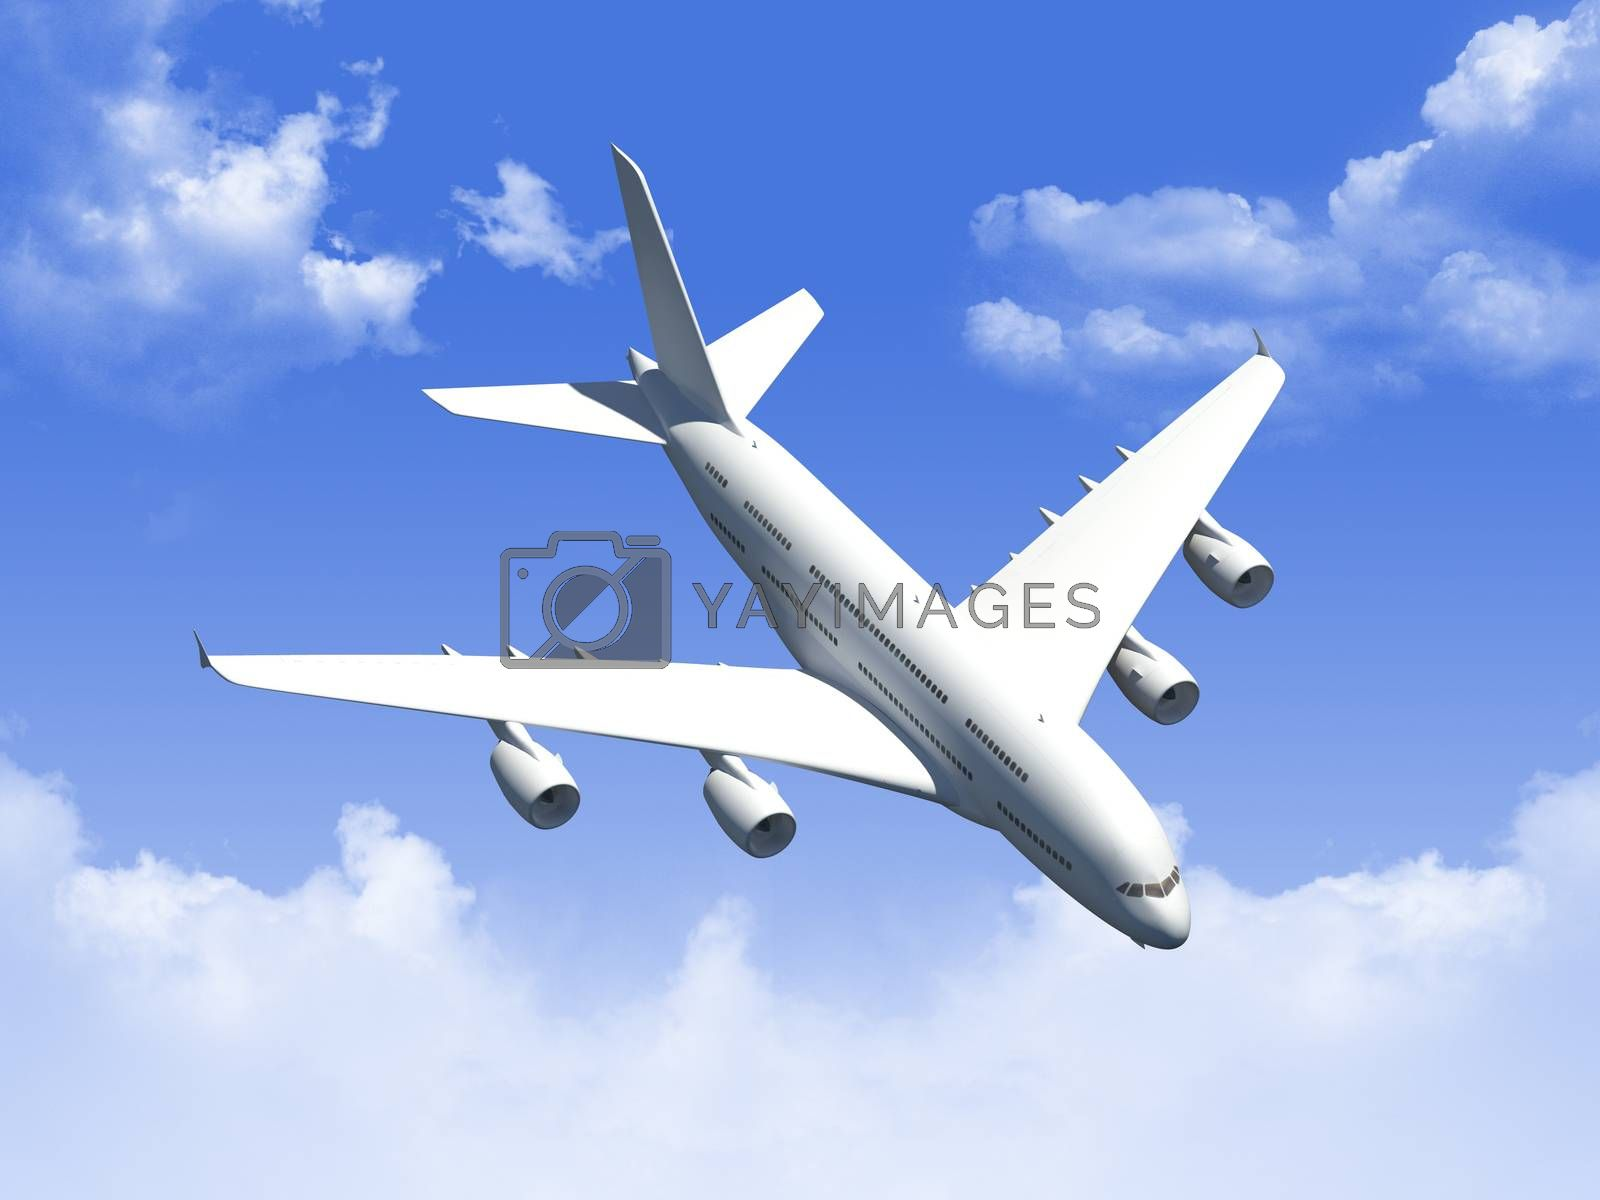 Airplane flying in the blue cloudy sky.